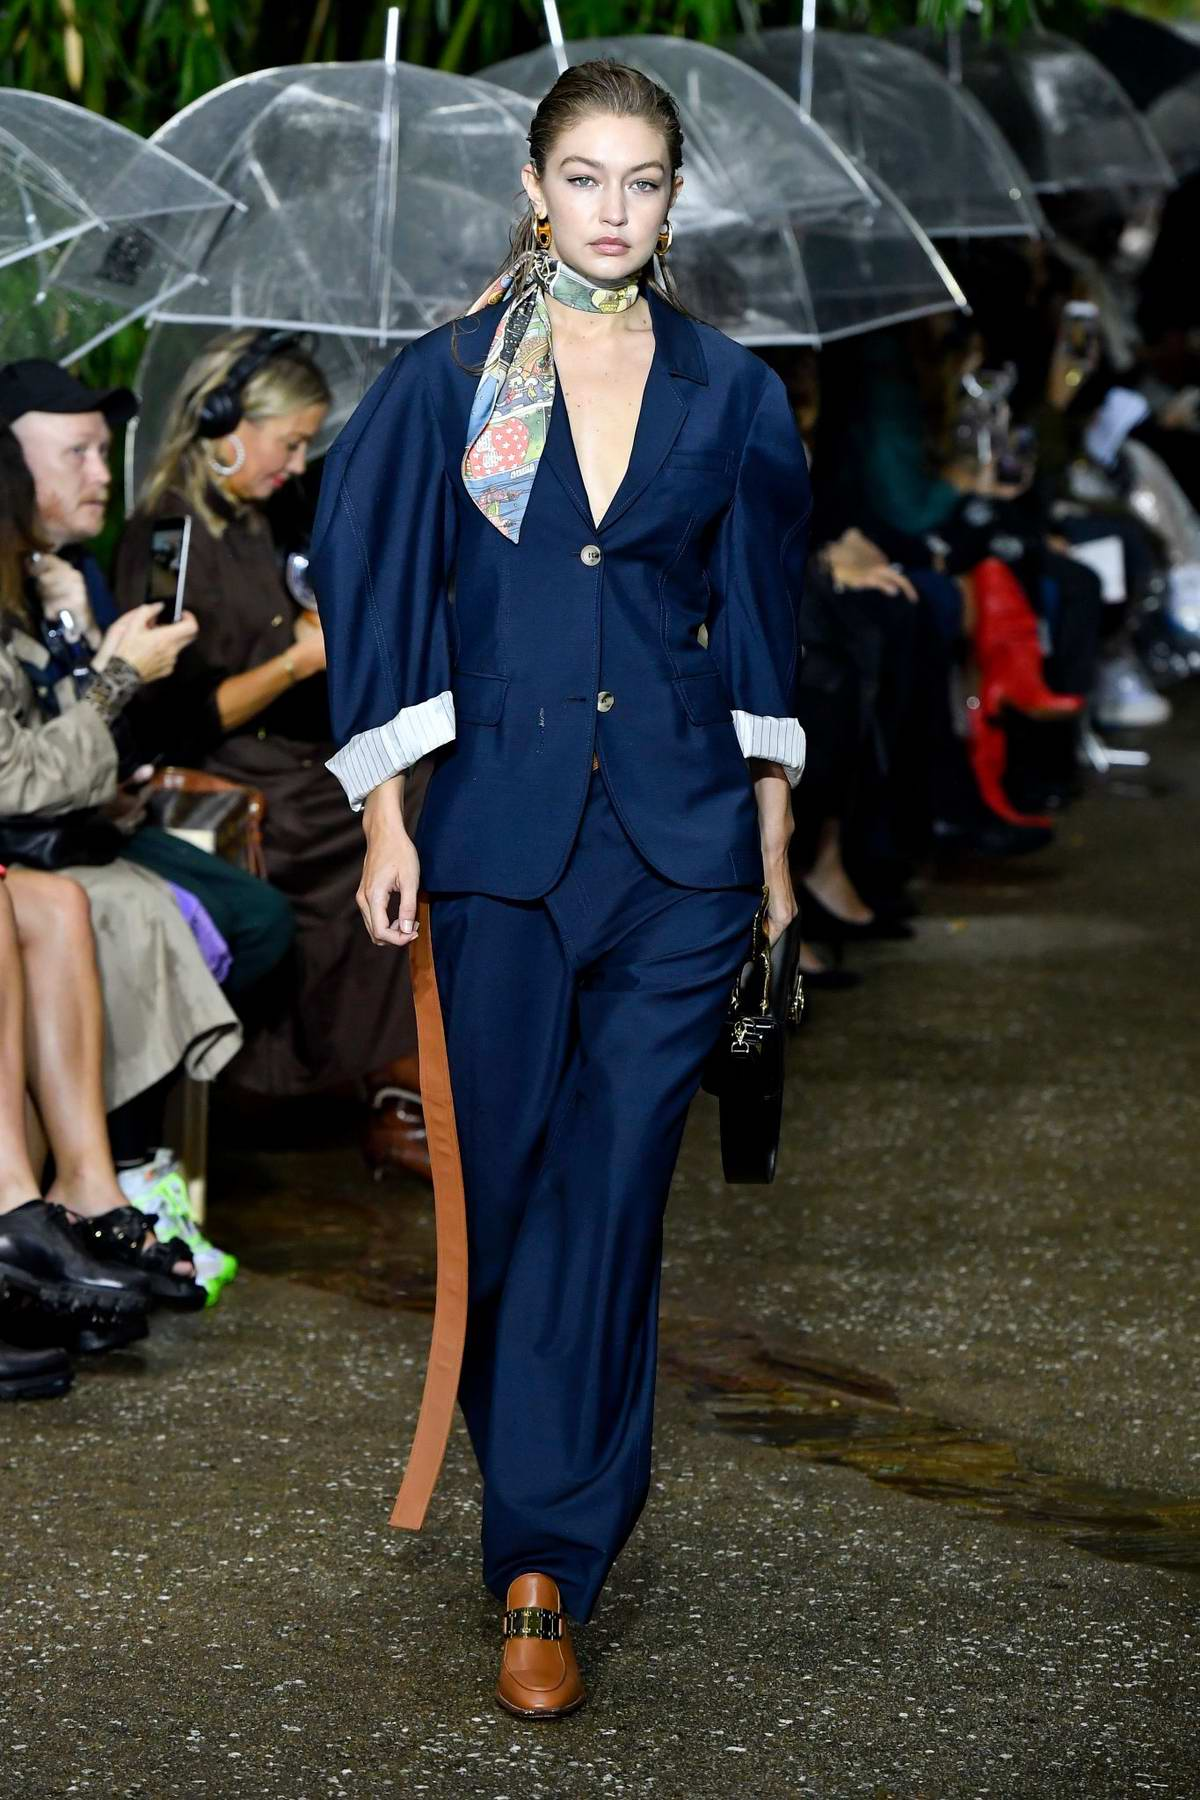 Gigi Hadid walks the runway for the Lanvin Ready to Wear, SS 2020 Show during Paris Fashion Week in Paris, France